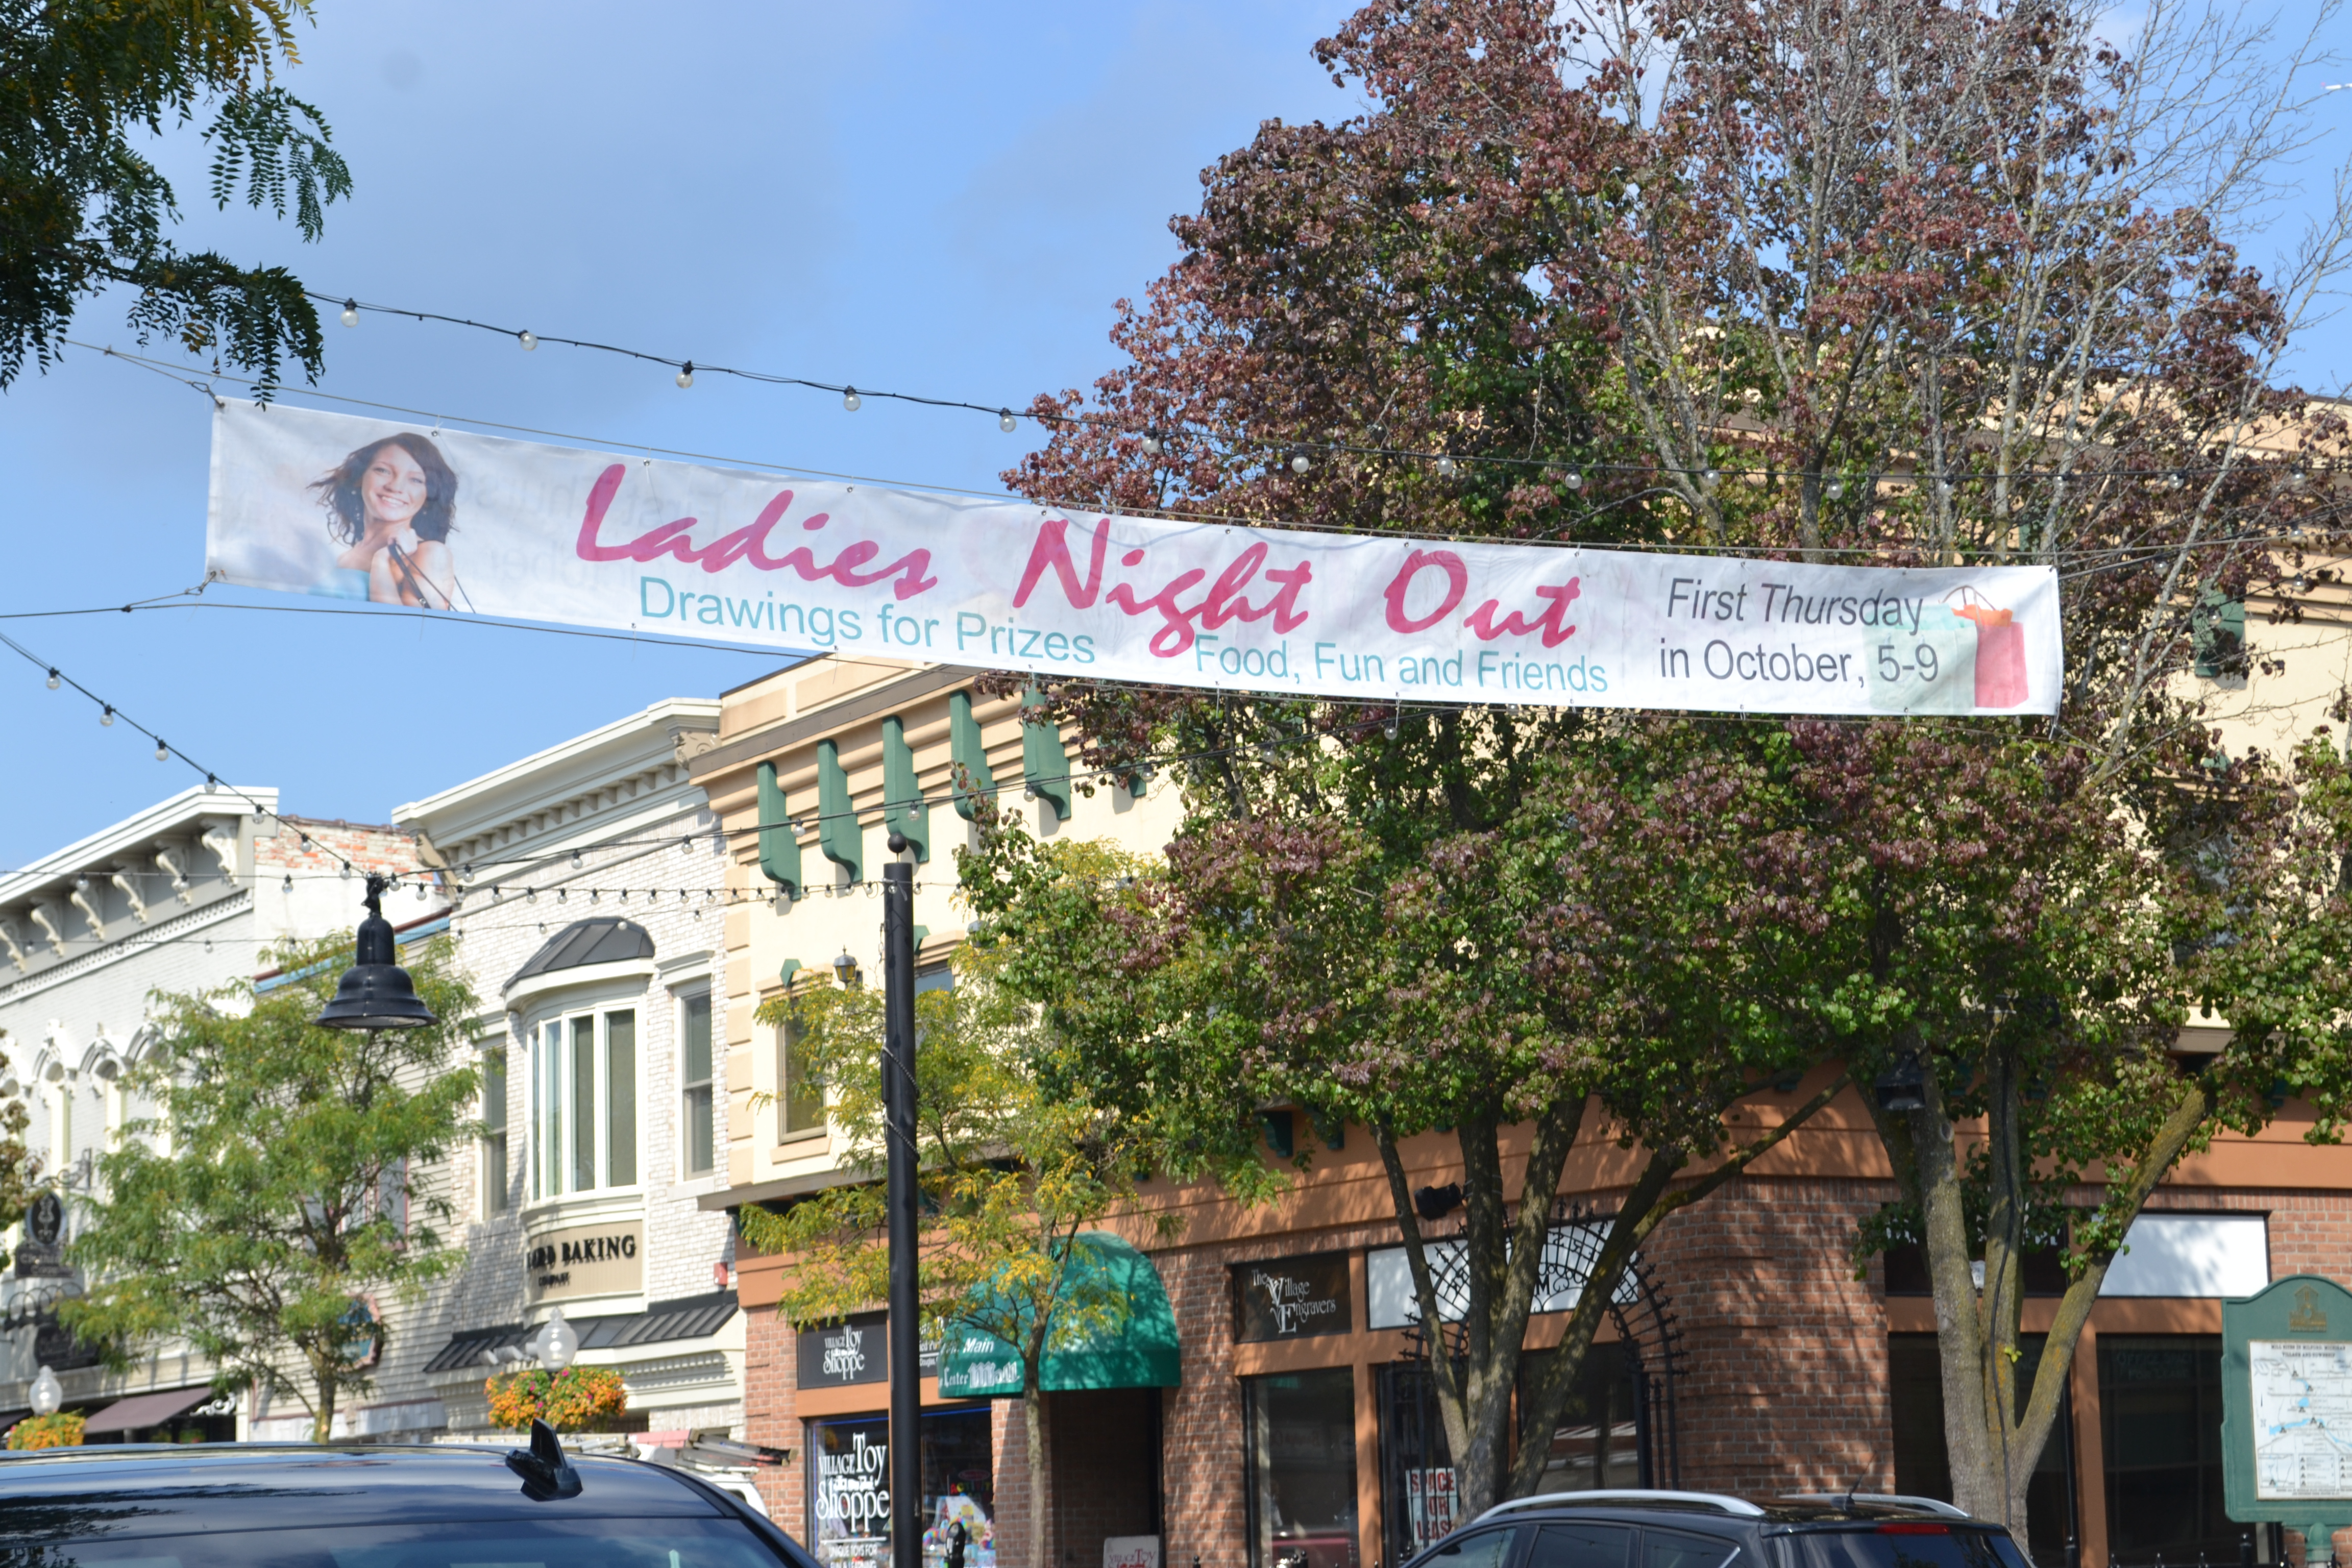 Milford's Ladies Night Out Returns to Main Street October 4th!